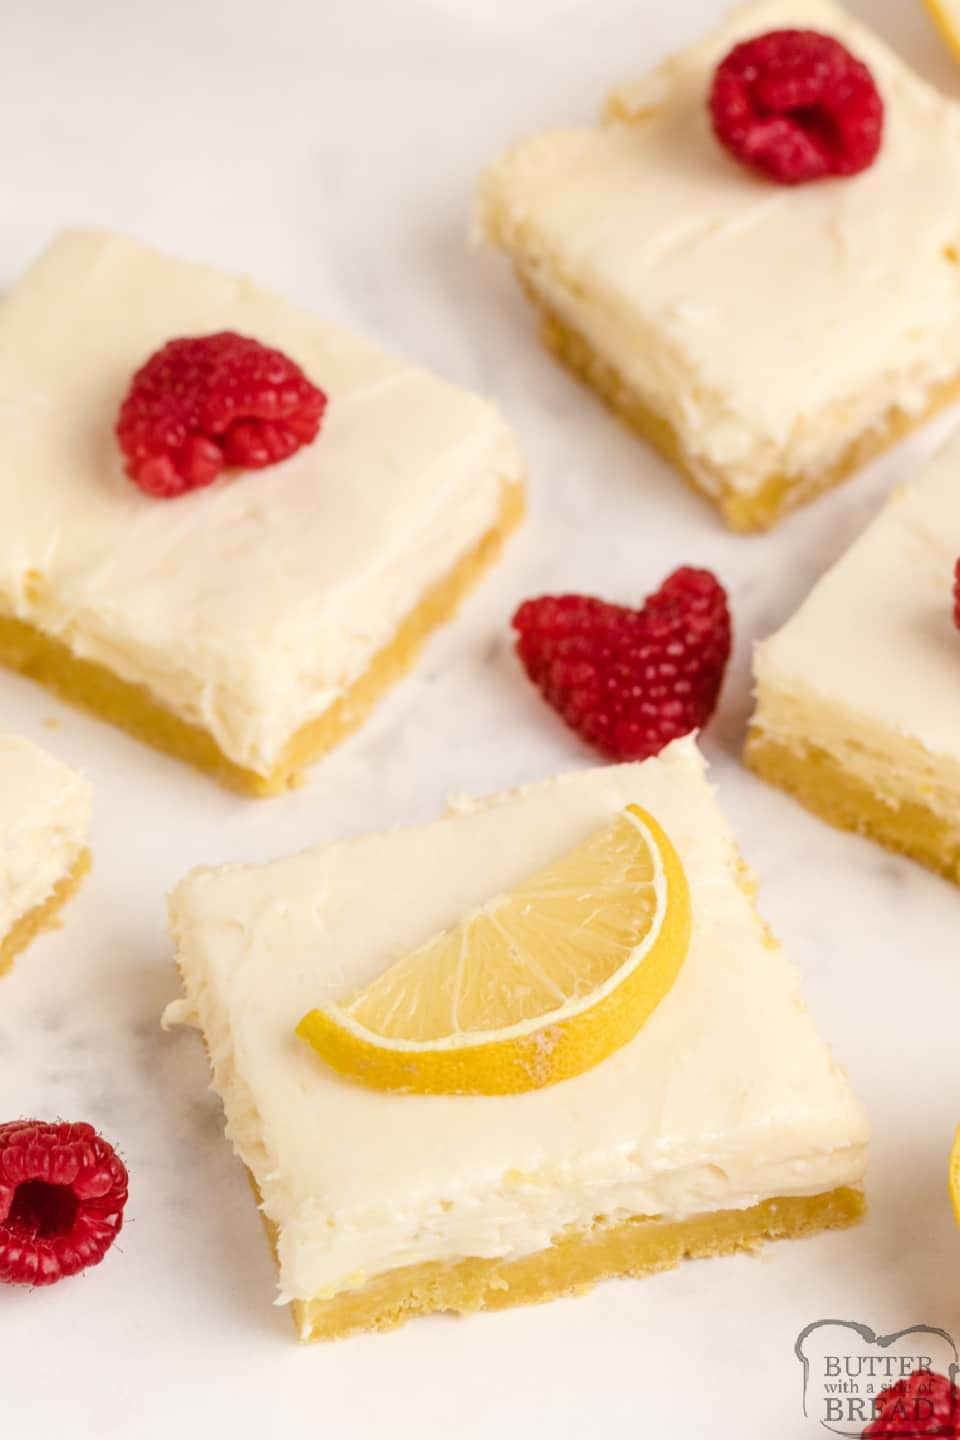 Lemon Cream Cheese Bars with a lemon cake mix crust, a vanilla cream cheese filling and a lemon cream cheese topping. Simple and delicious layered lemon bar recipe!